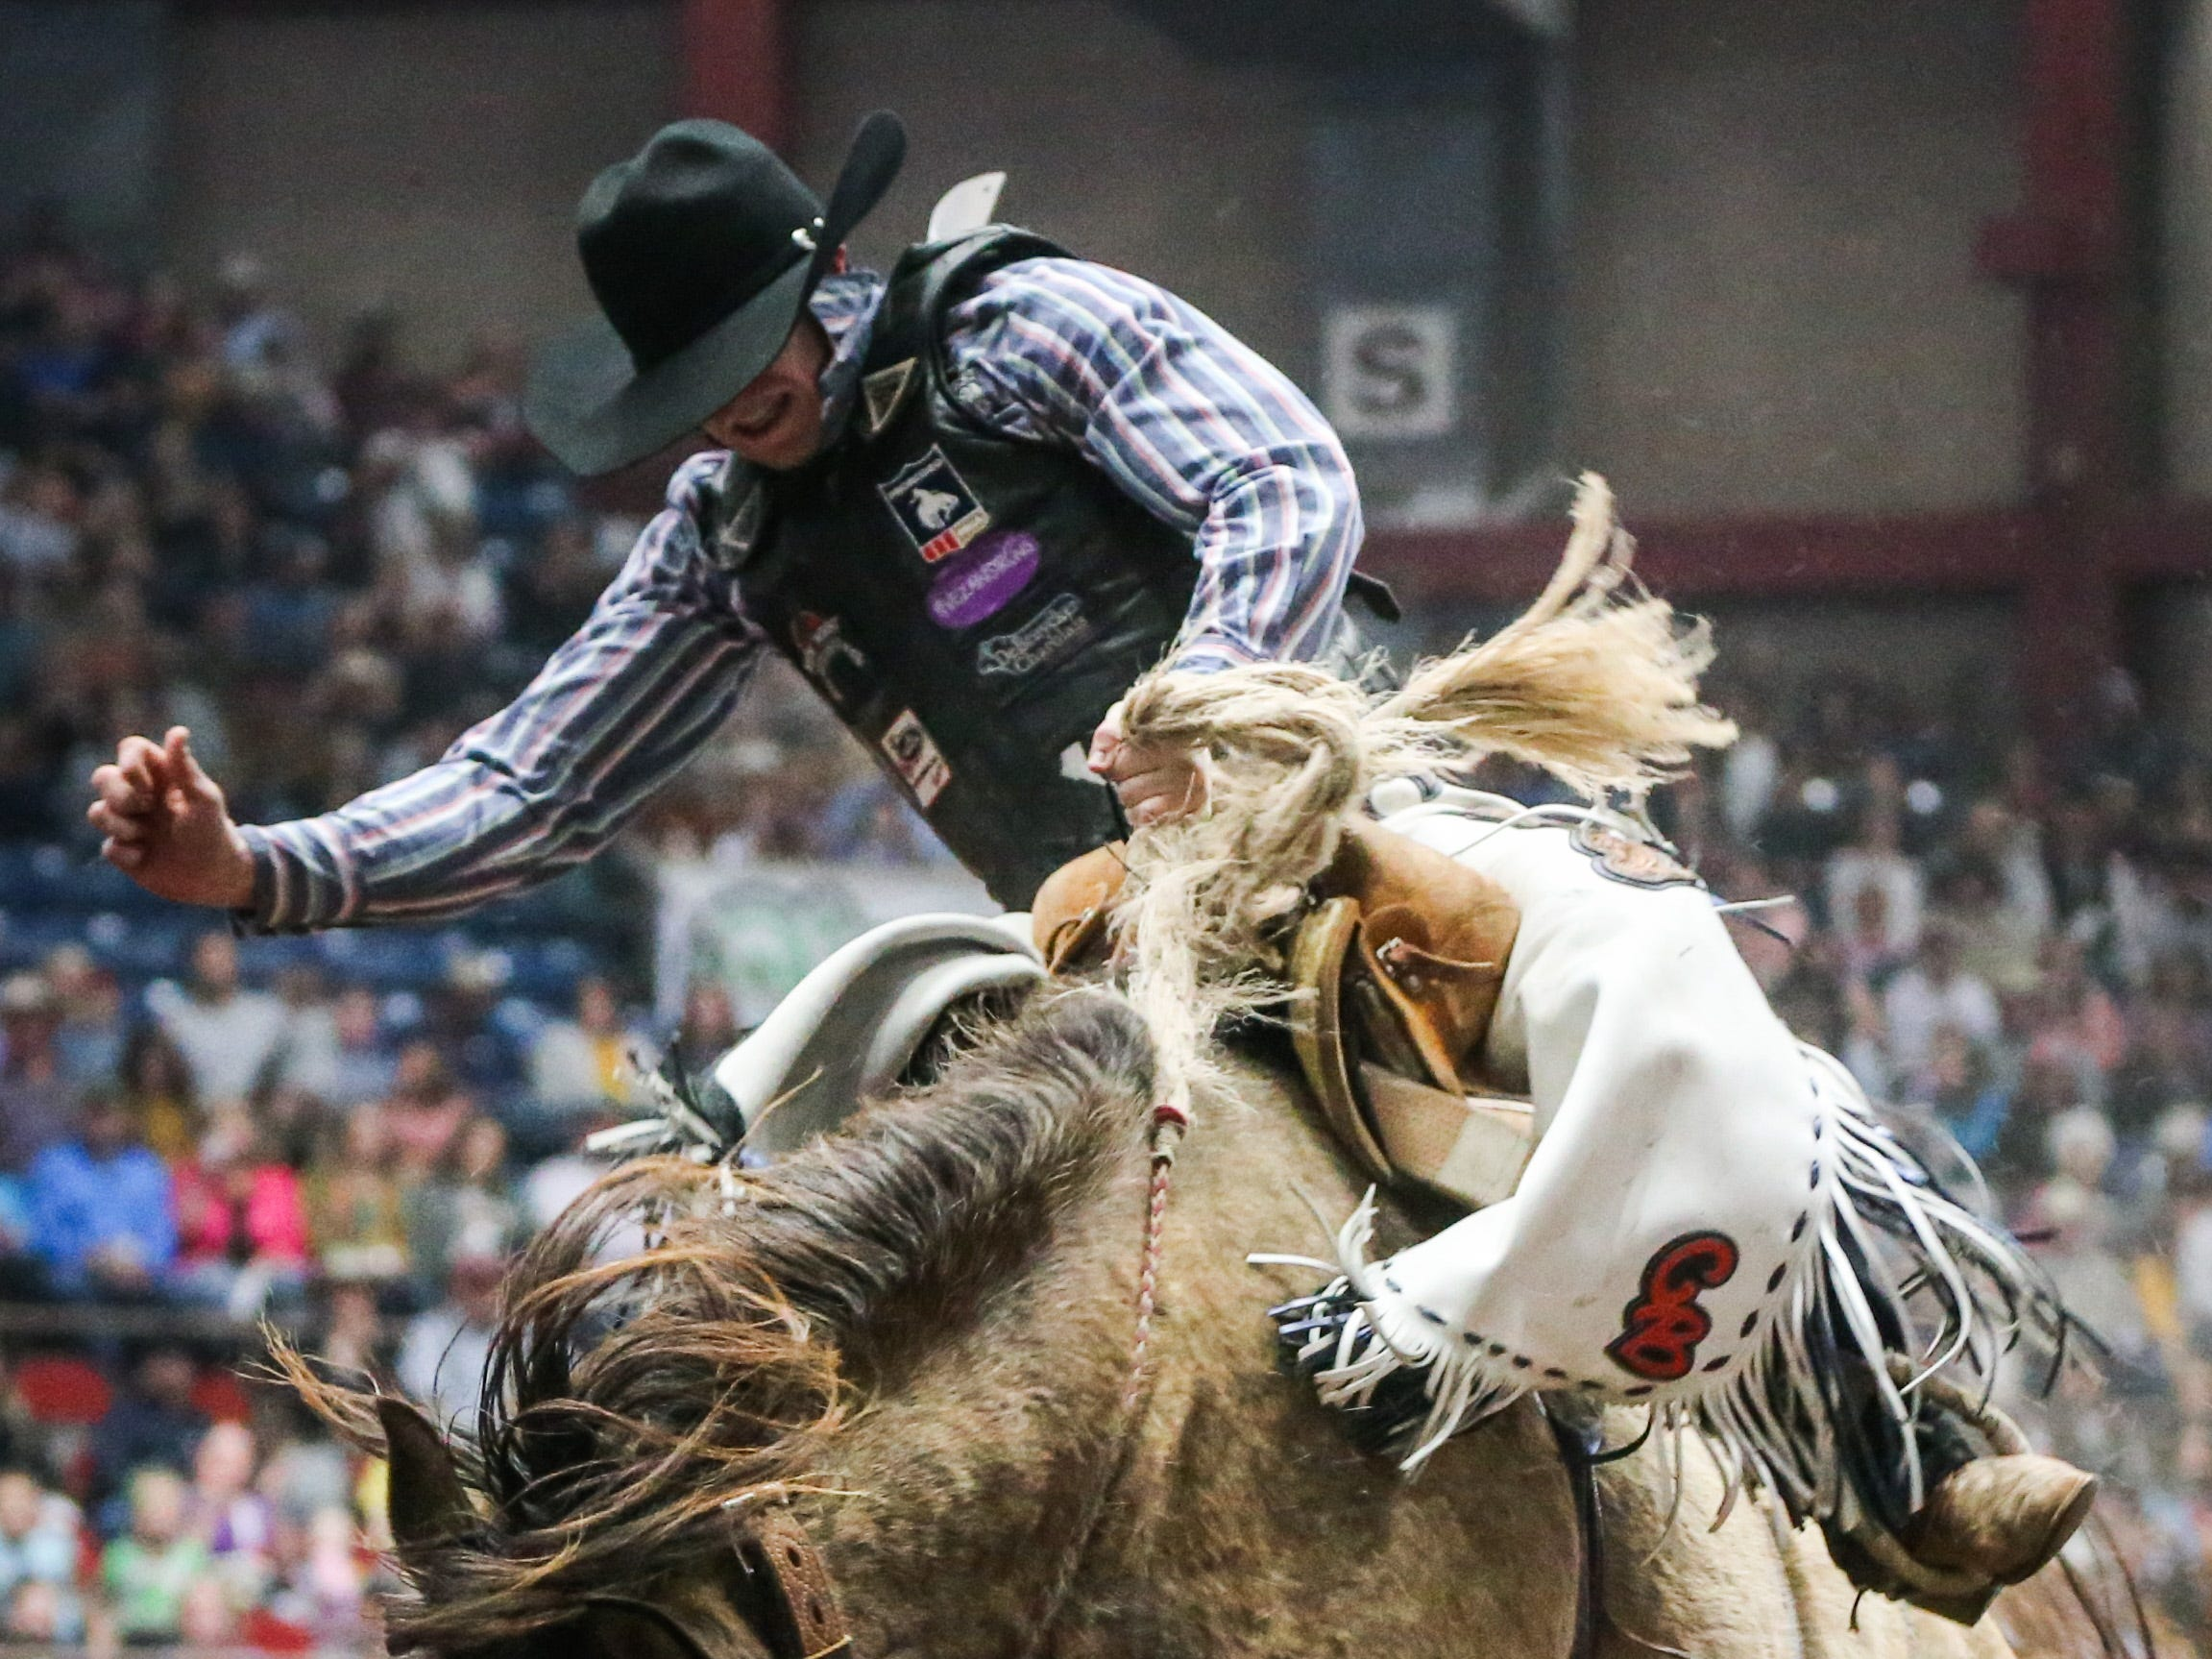 Chase Brooks rides a bronc during finals of the San Angelo Stock Show & Rodeo Friday, Feb. 15, 2019, at Foster Communications Coliseum.